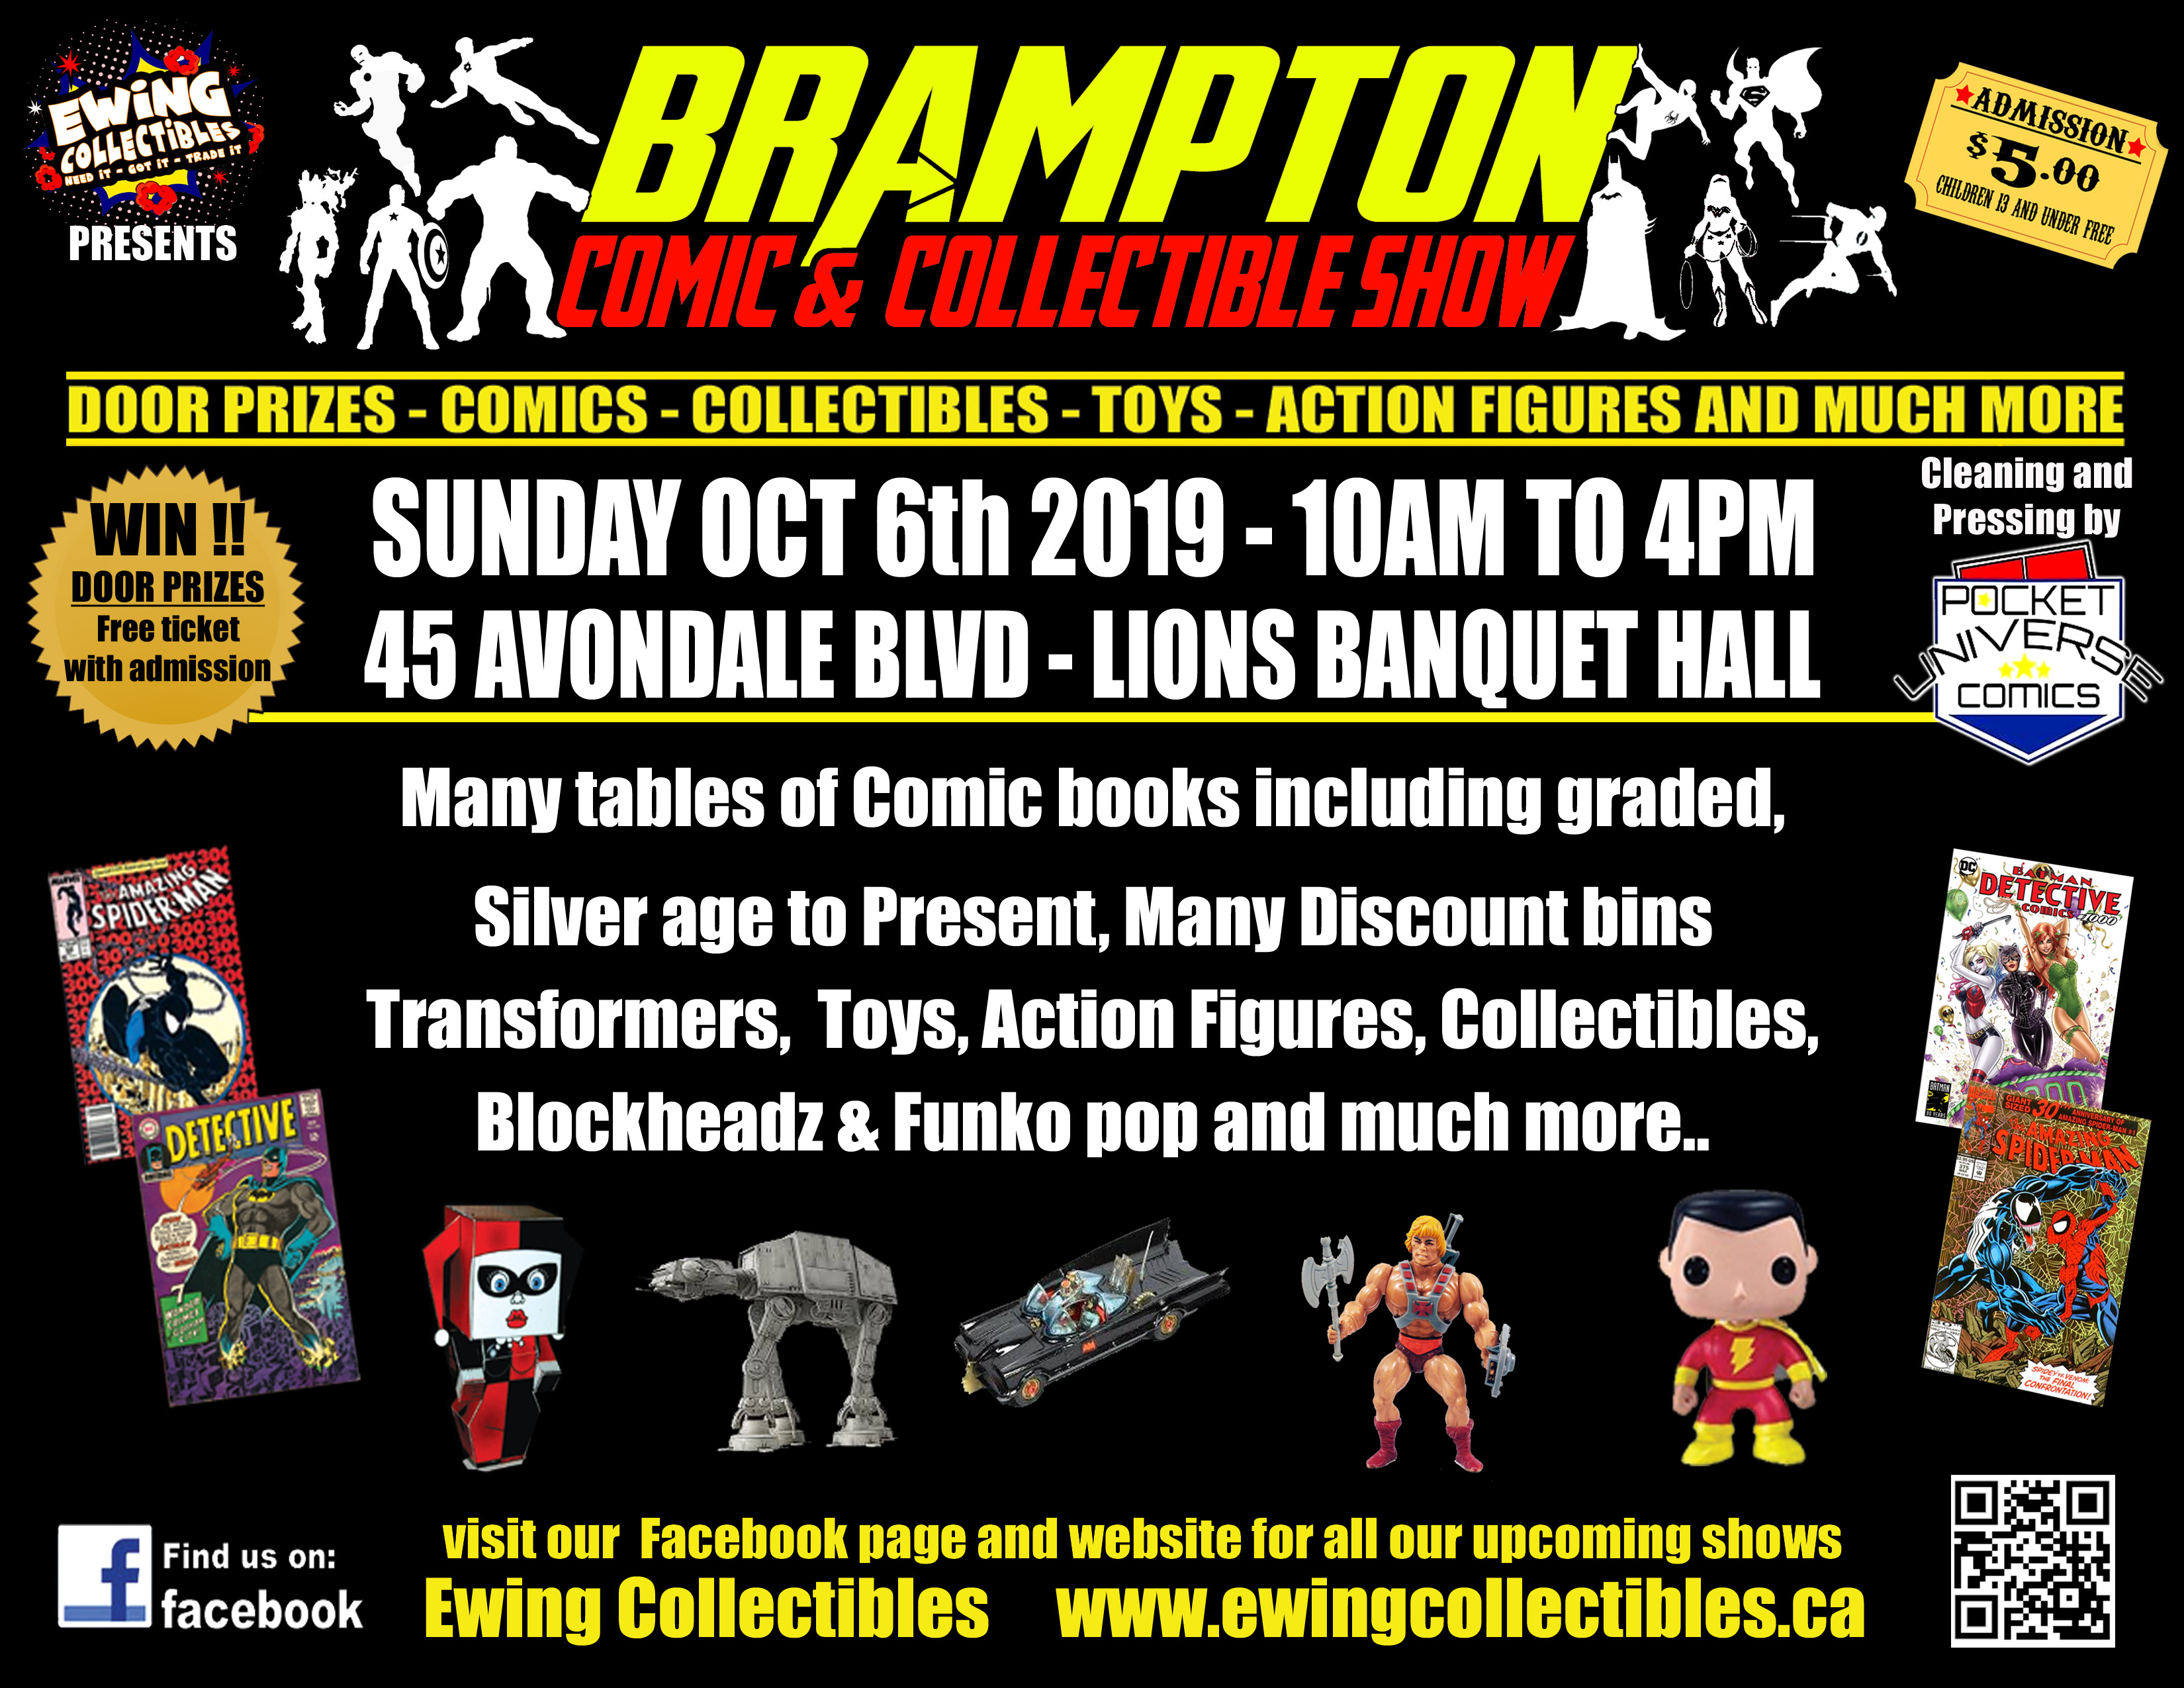 Brampton Comic and Collectibles Show